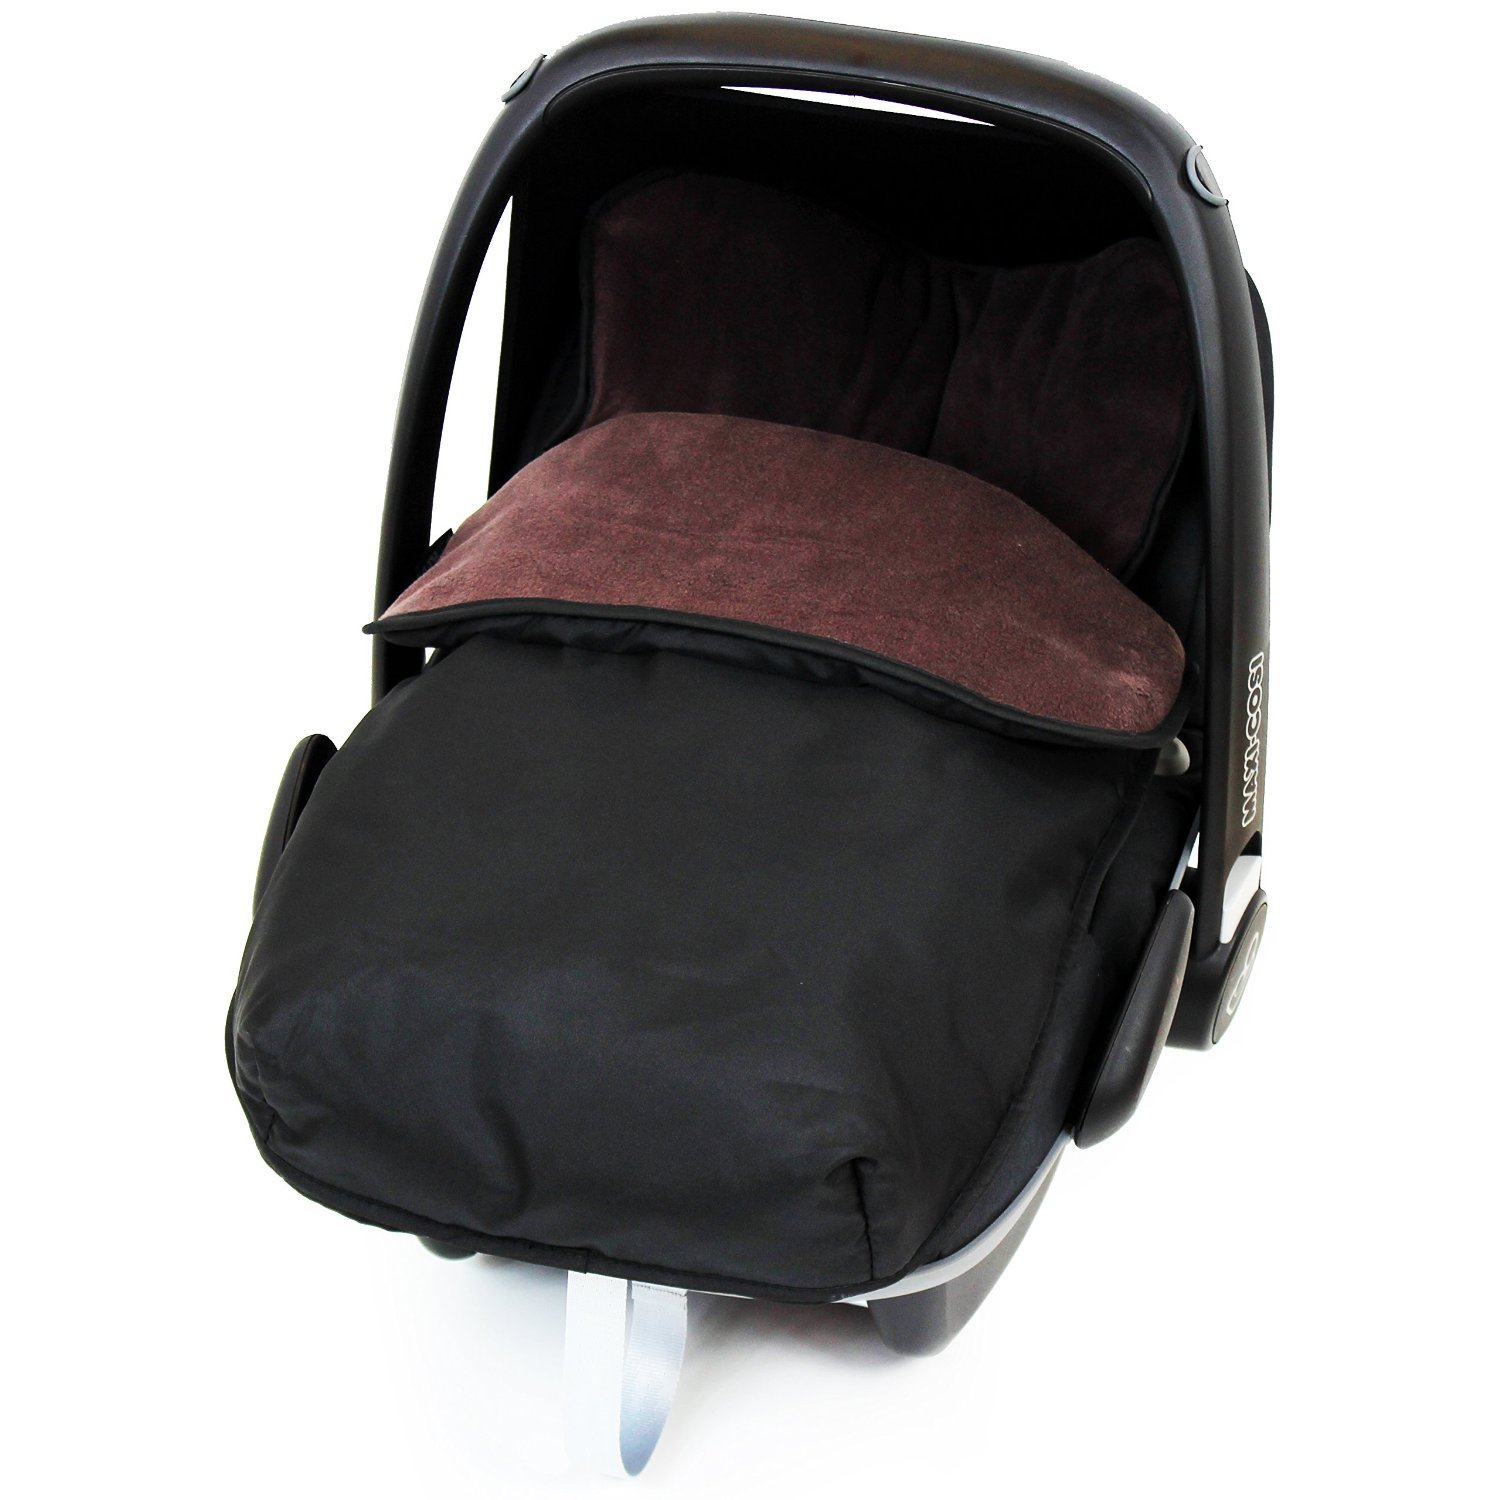 Universal Car Seat Footmuff To Fit Jane - Hot Chocolate (Black / Brown) iSafe iSBgtCrsFmBrown